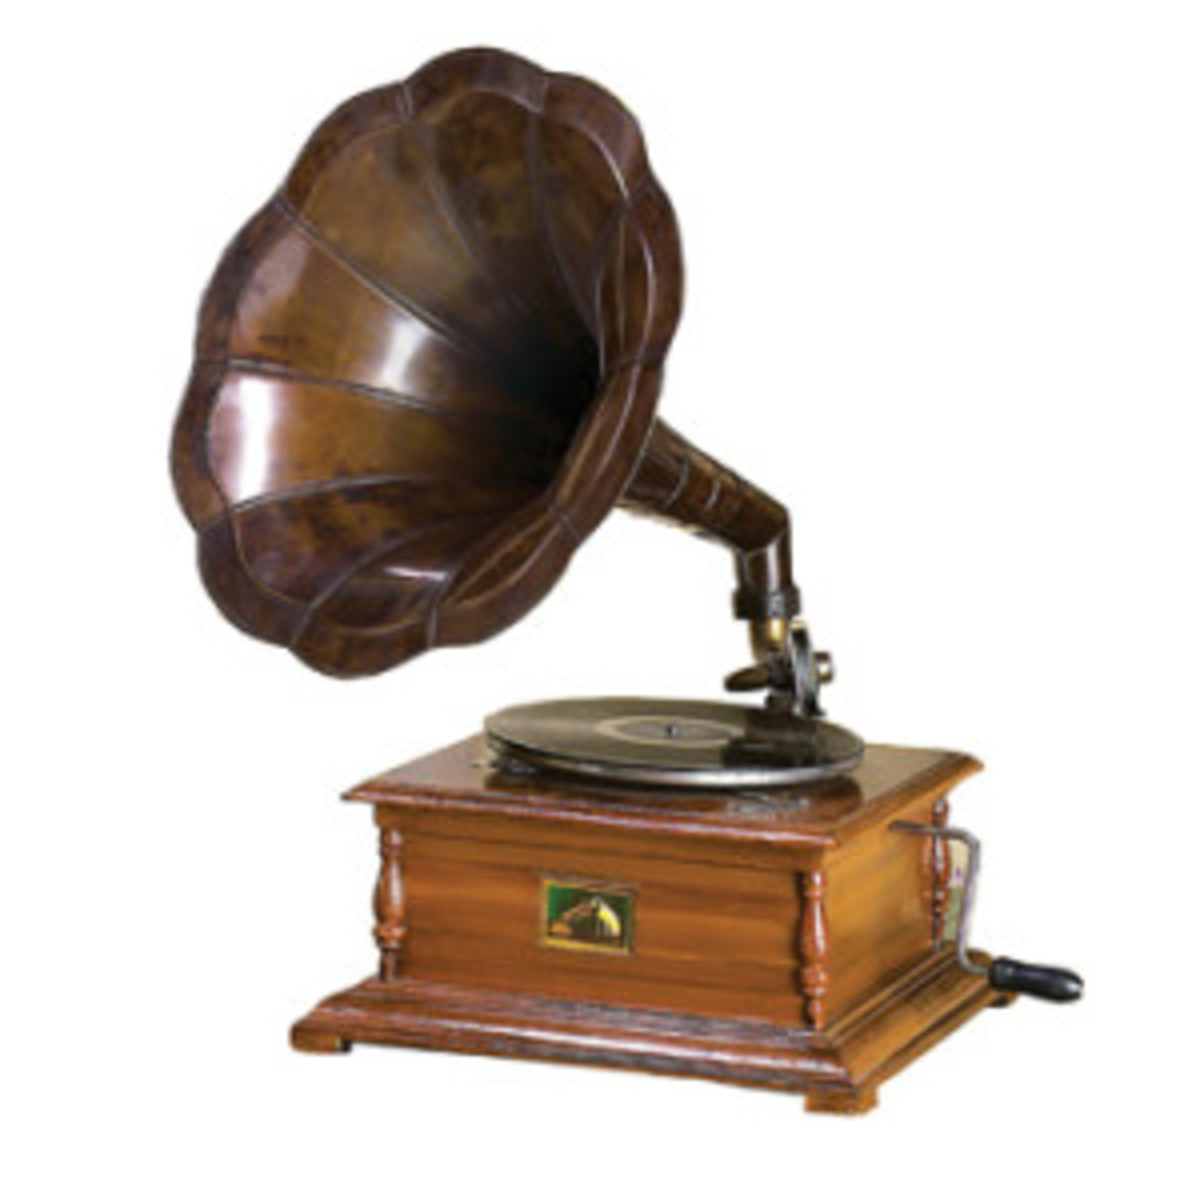 You can see the mechanically turned knob. This is the most common image of the gramophone used by many Americans. Thomas Edison perfected it.